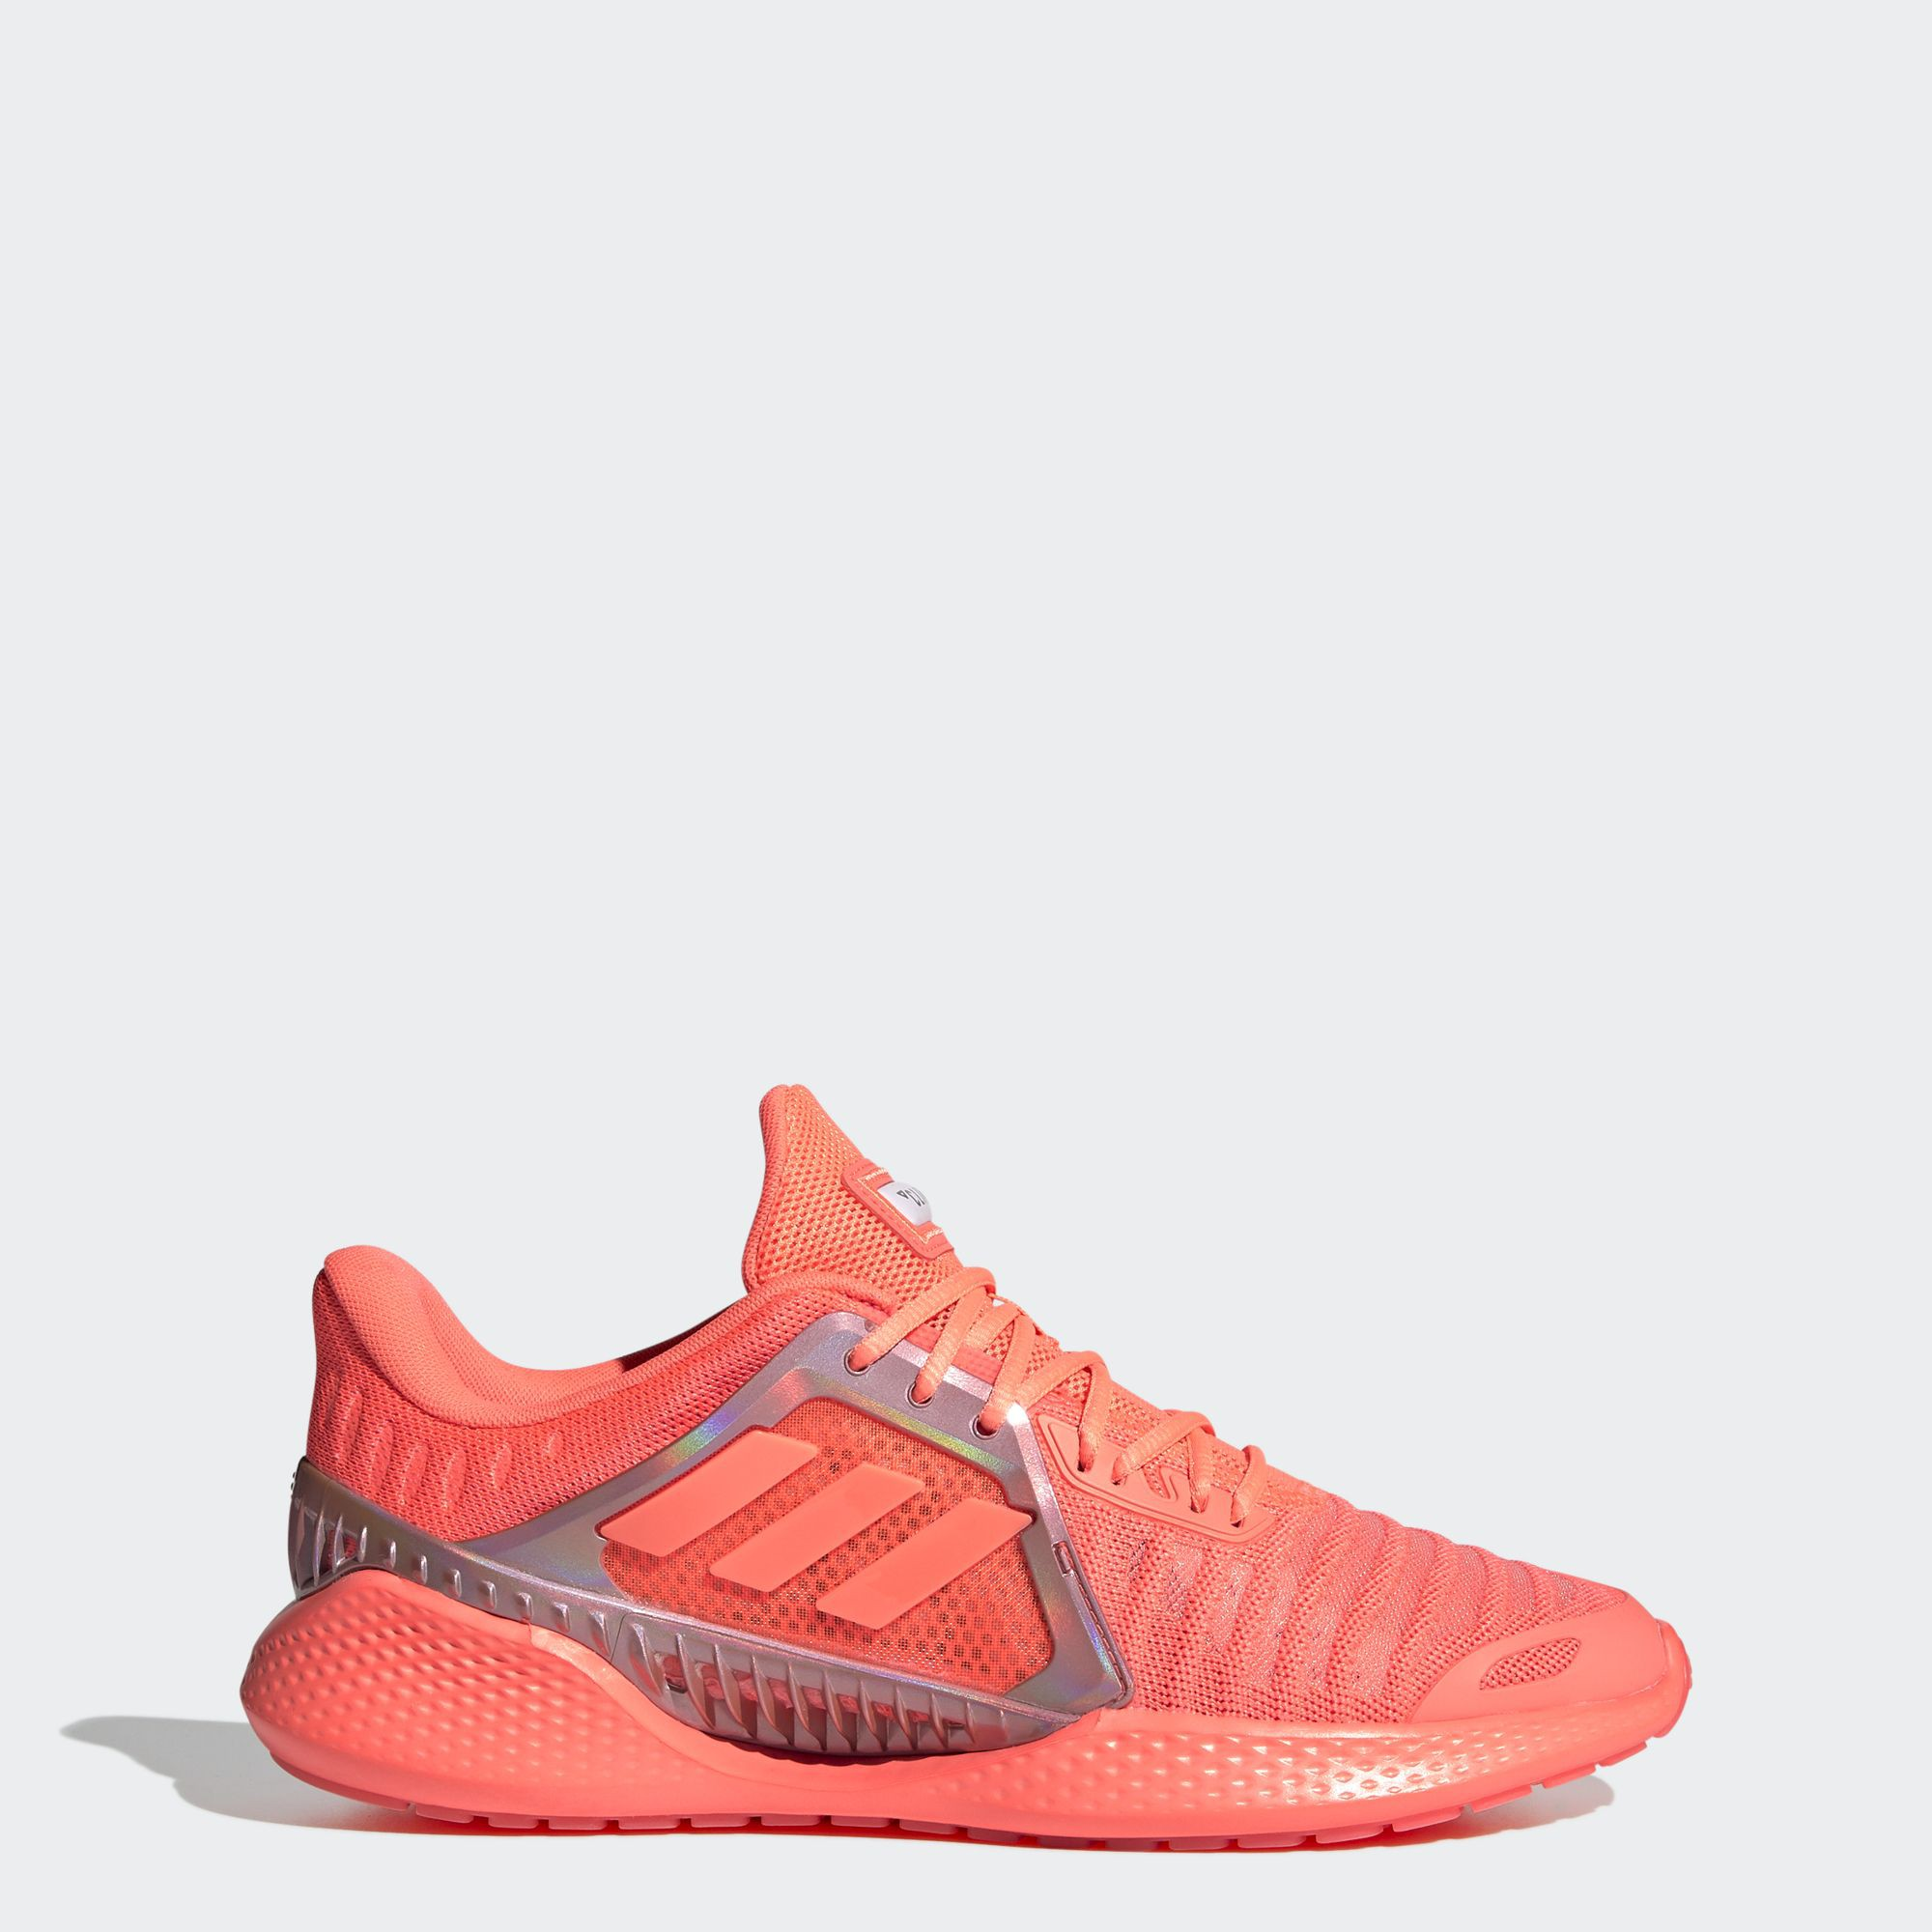 adidas RUNNING ClimaCool Vent Summer.RDY LTD Shoes Unisex EE4639